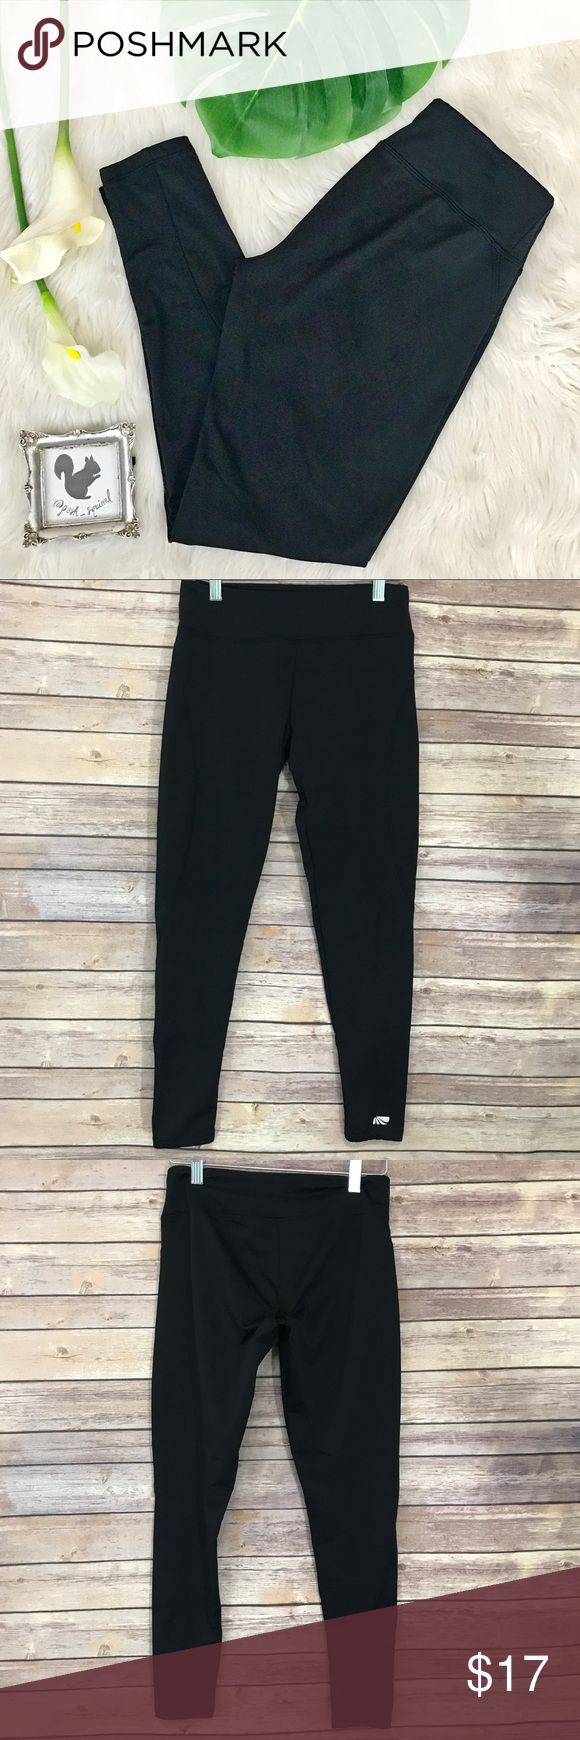 """Marika Tek fleece lined Running Leggings •Details• solid black fleece lined running workout leggings!  Full length. Have subtle sheen. Light compression. Reflective logo on one ankle •Condition• Lightly worn  •Material• 93% polyester, 7% spandex. •Color• black  All measurements are taken while item is laying flat and are approximate.  •inseam• 27"""" •Waist• 13"""" unstretched  I consider ALL Offers! Don't be shy! No Trades Marika Pants Leggings"""